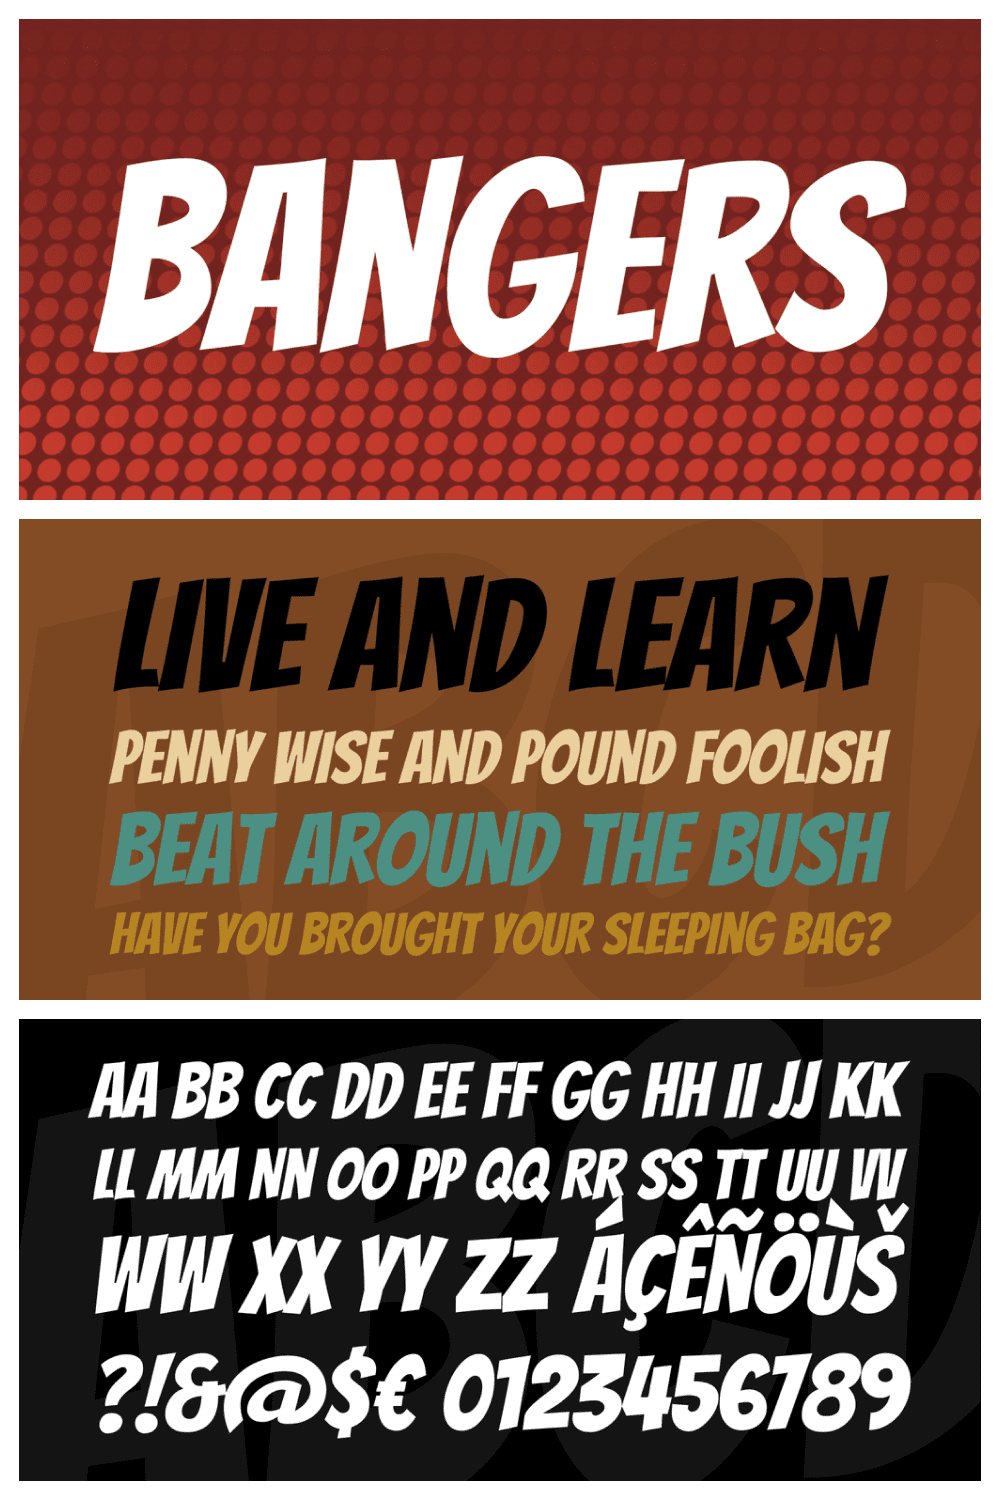 Bangers is a comicbook style font which packs a punch.